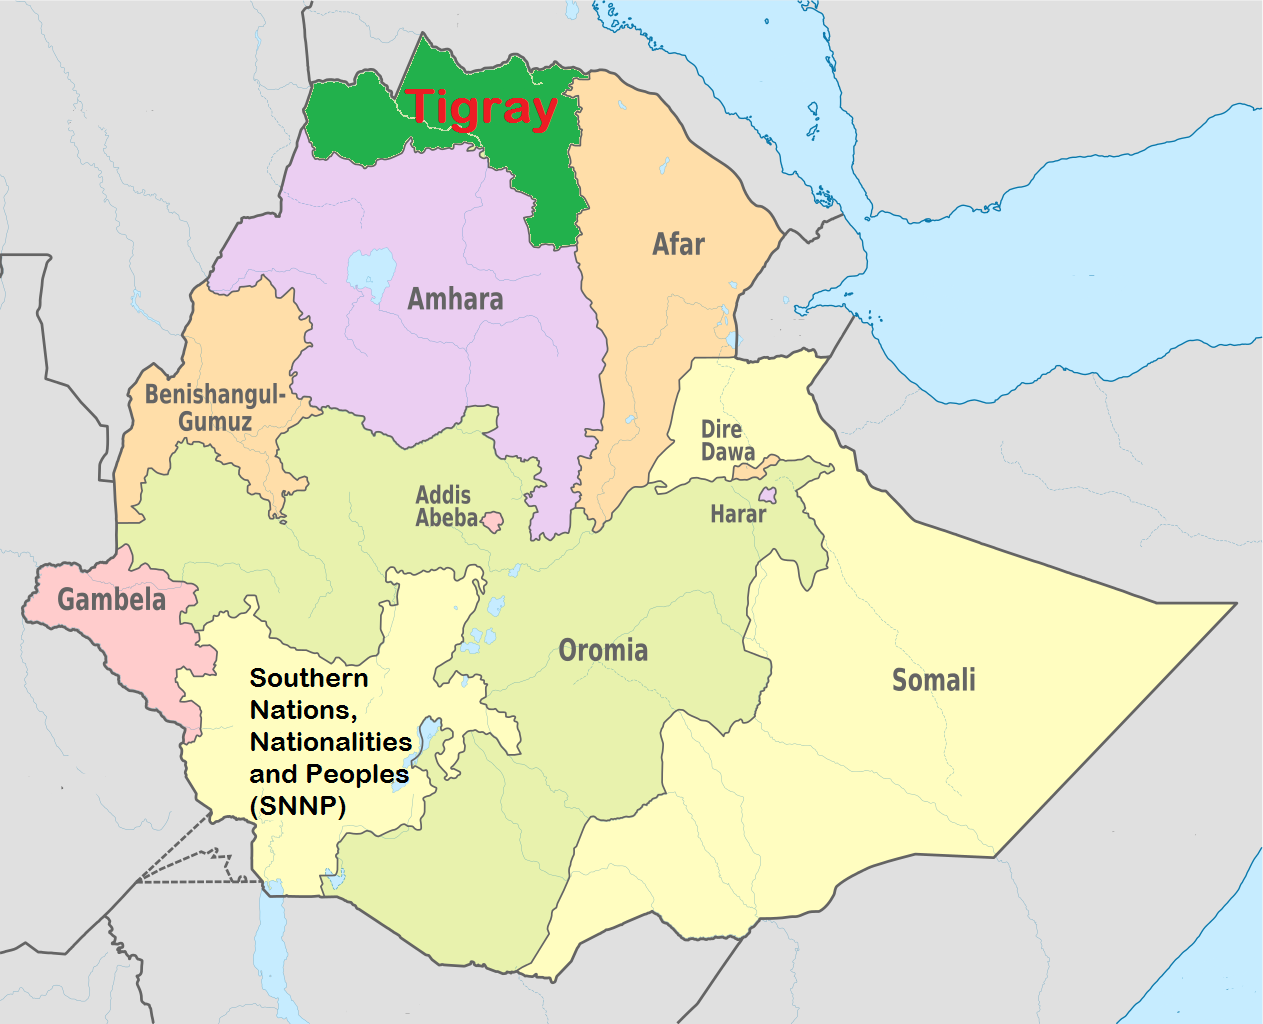 Tigray on a map